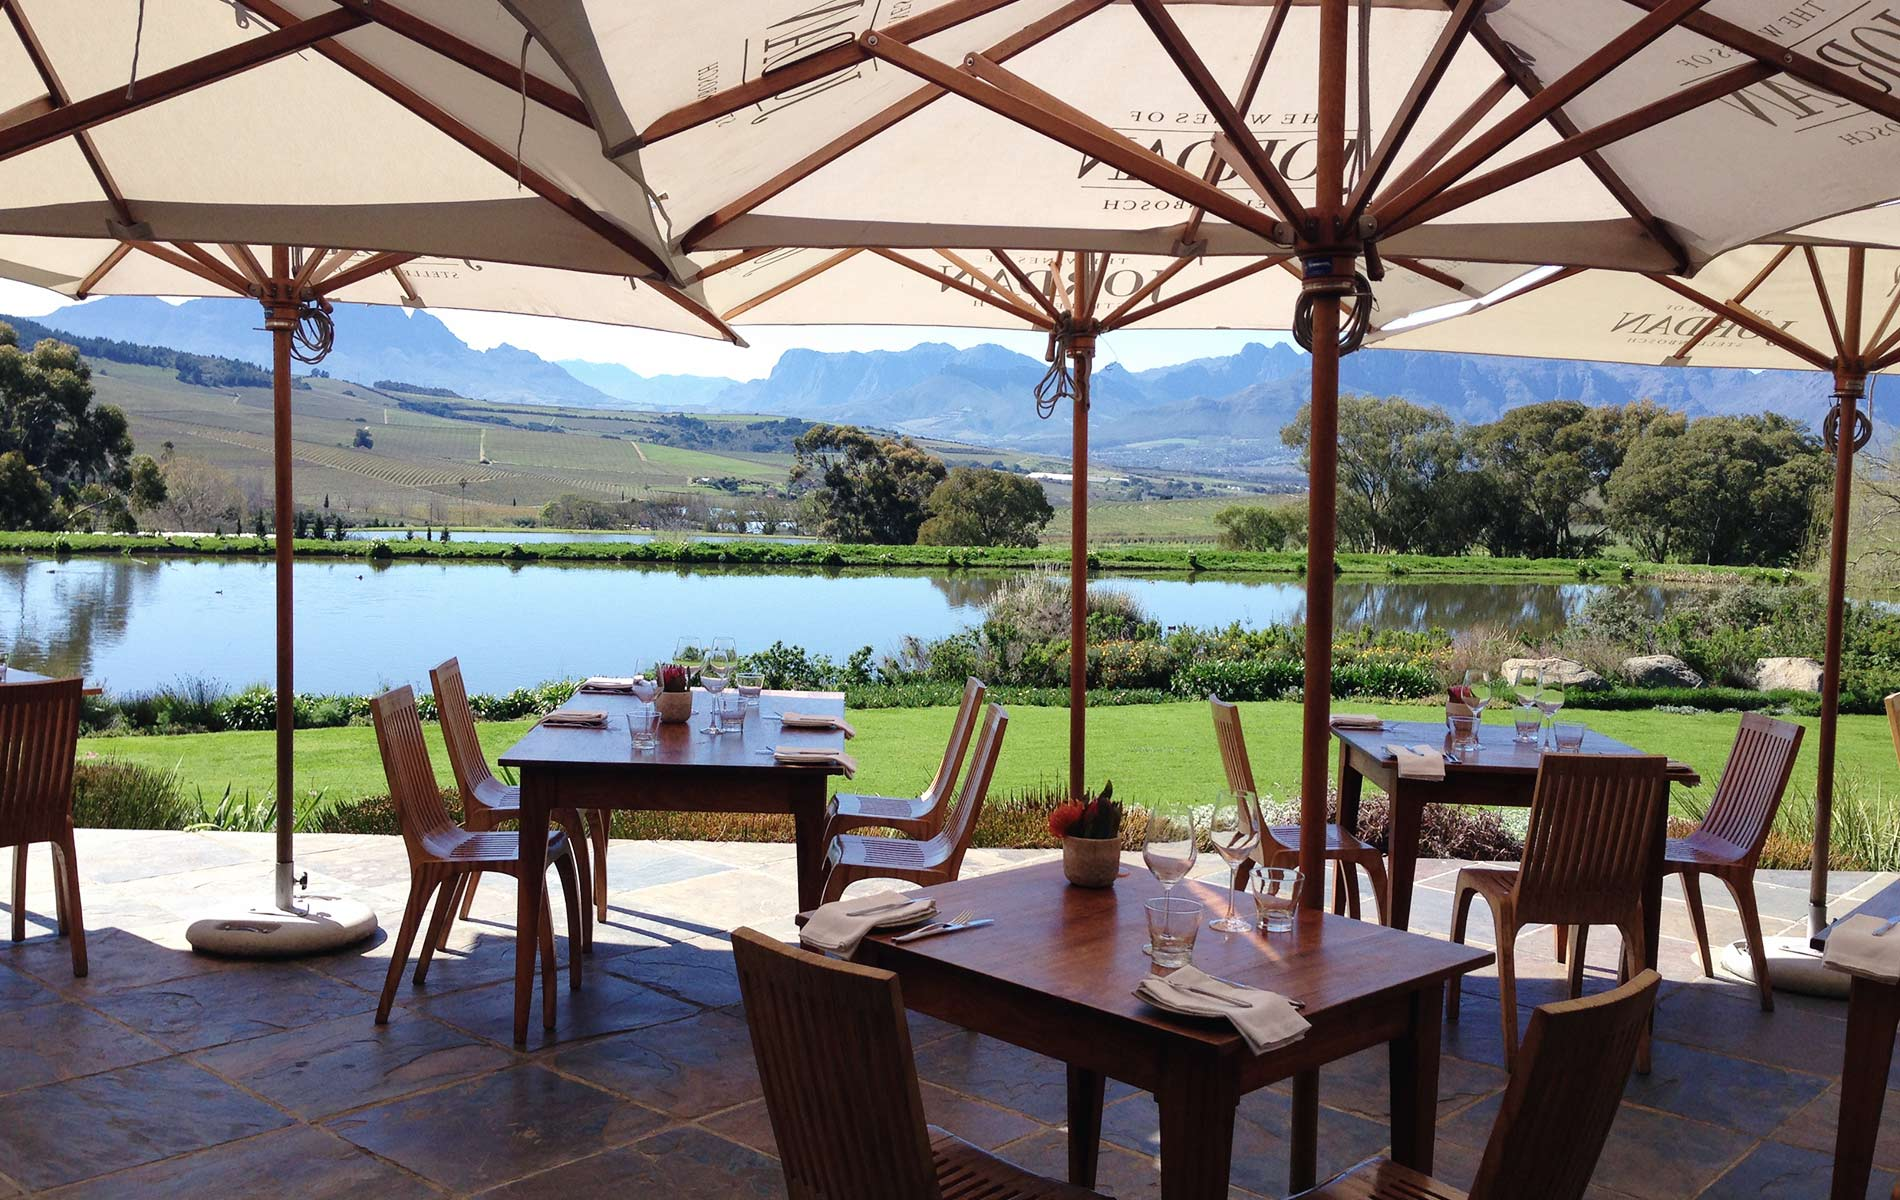 3 DAY WINELANDS EXPERIENCE